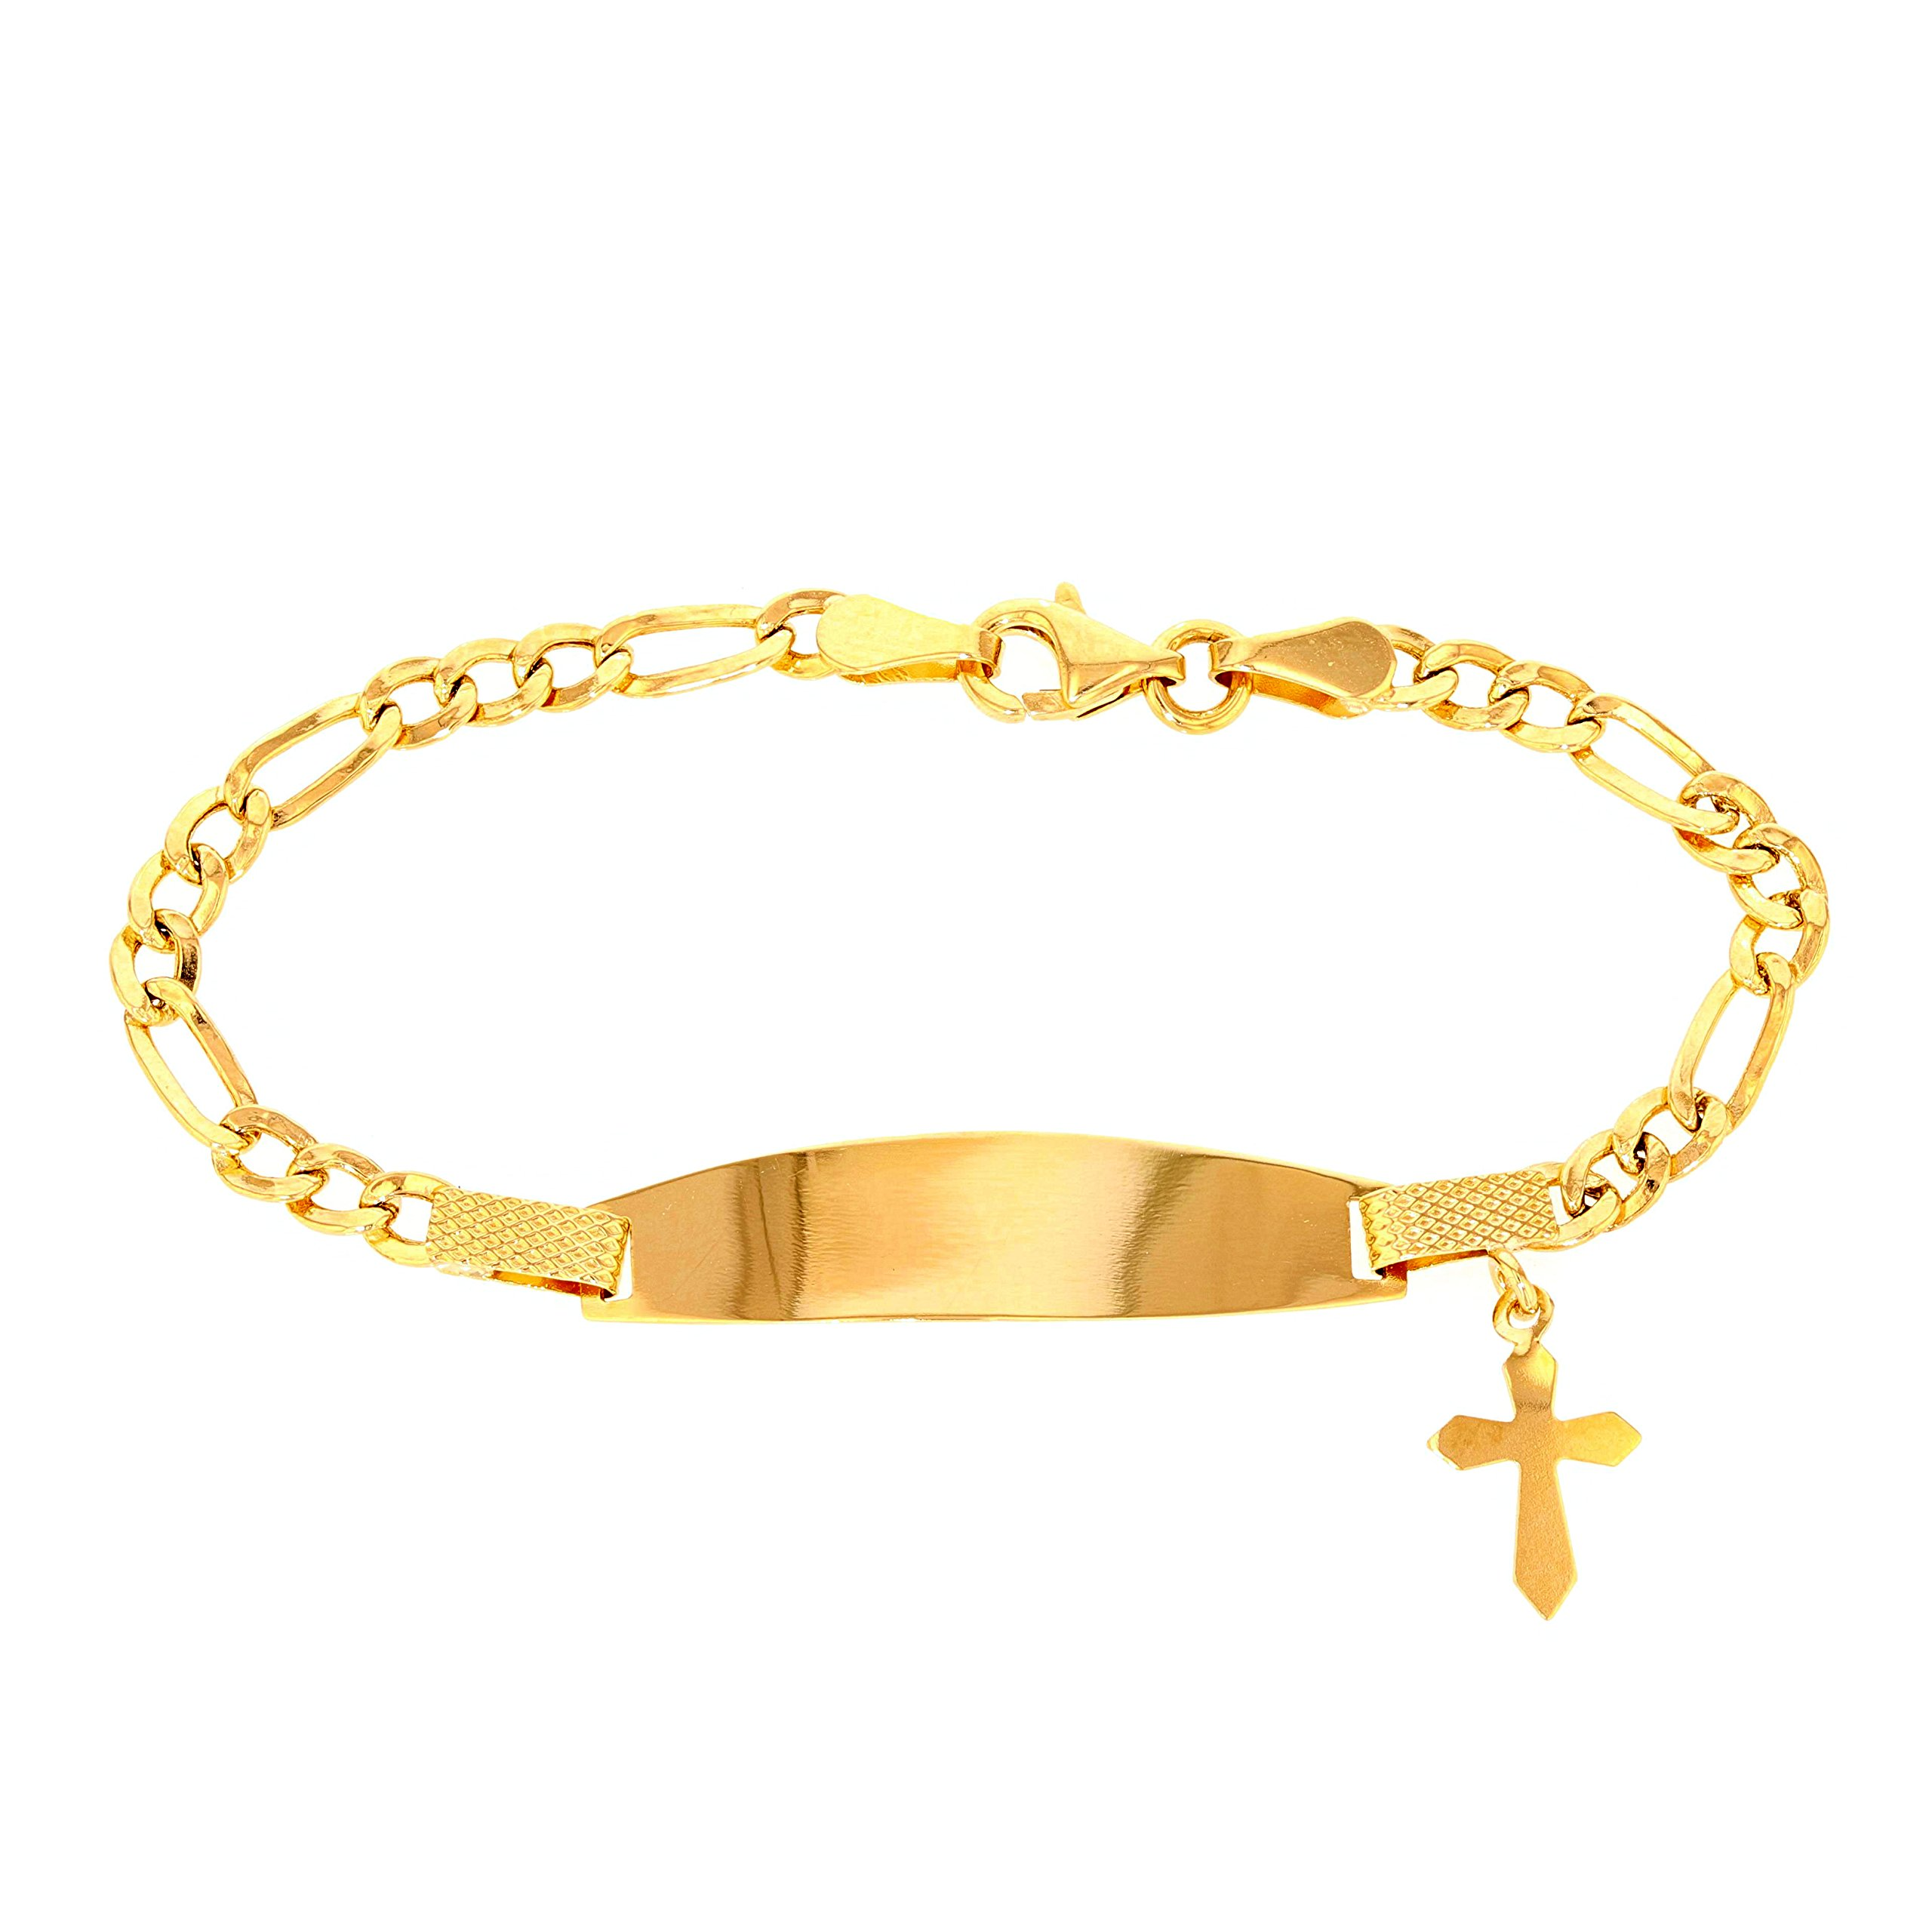 Solid 14k Yellow Gold Baby ID Bracelet with Religious Cross, 5.5''